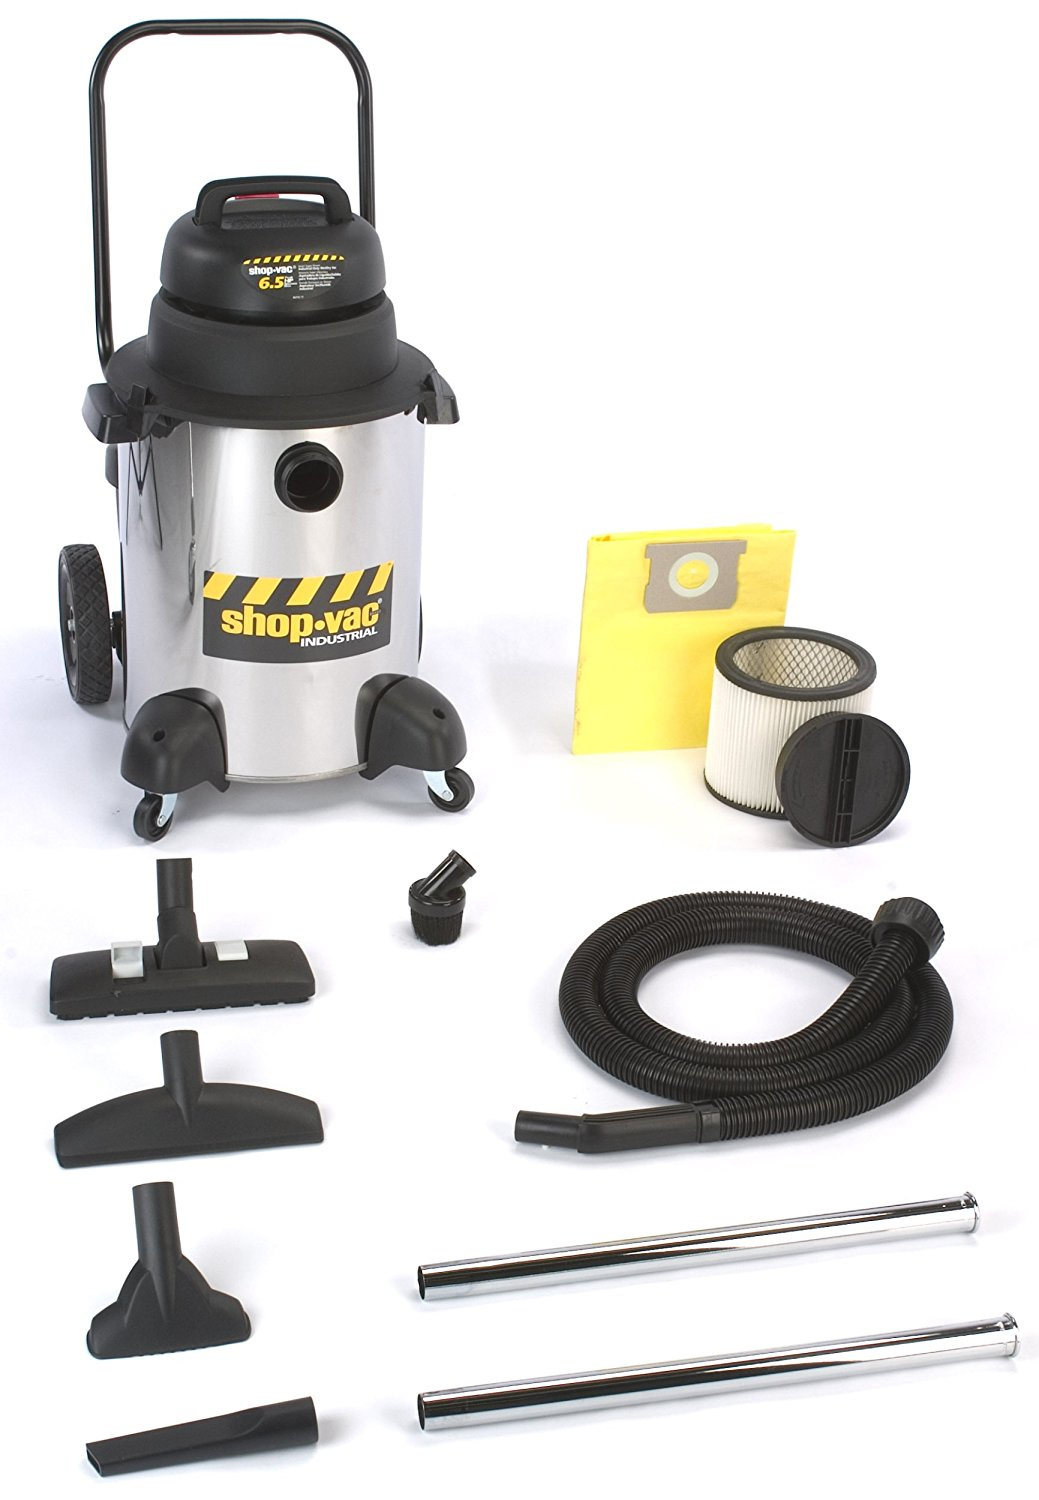 Shop-Vac 9252310 10-Gallon 6.5-Peak HP Industrial Wet/Dry Vacuum